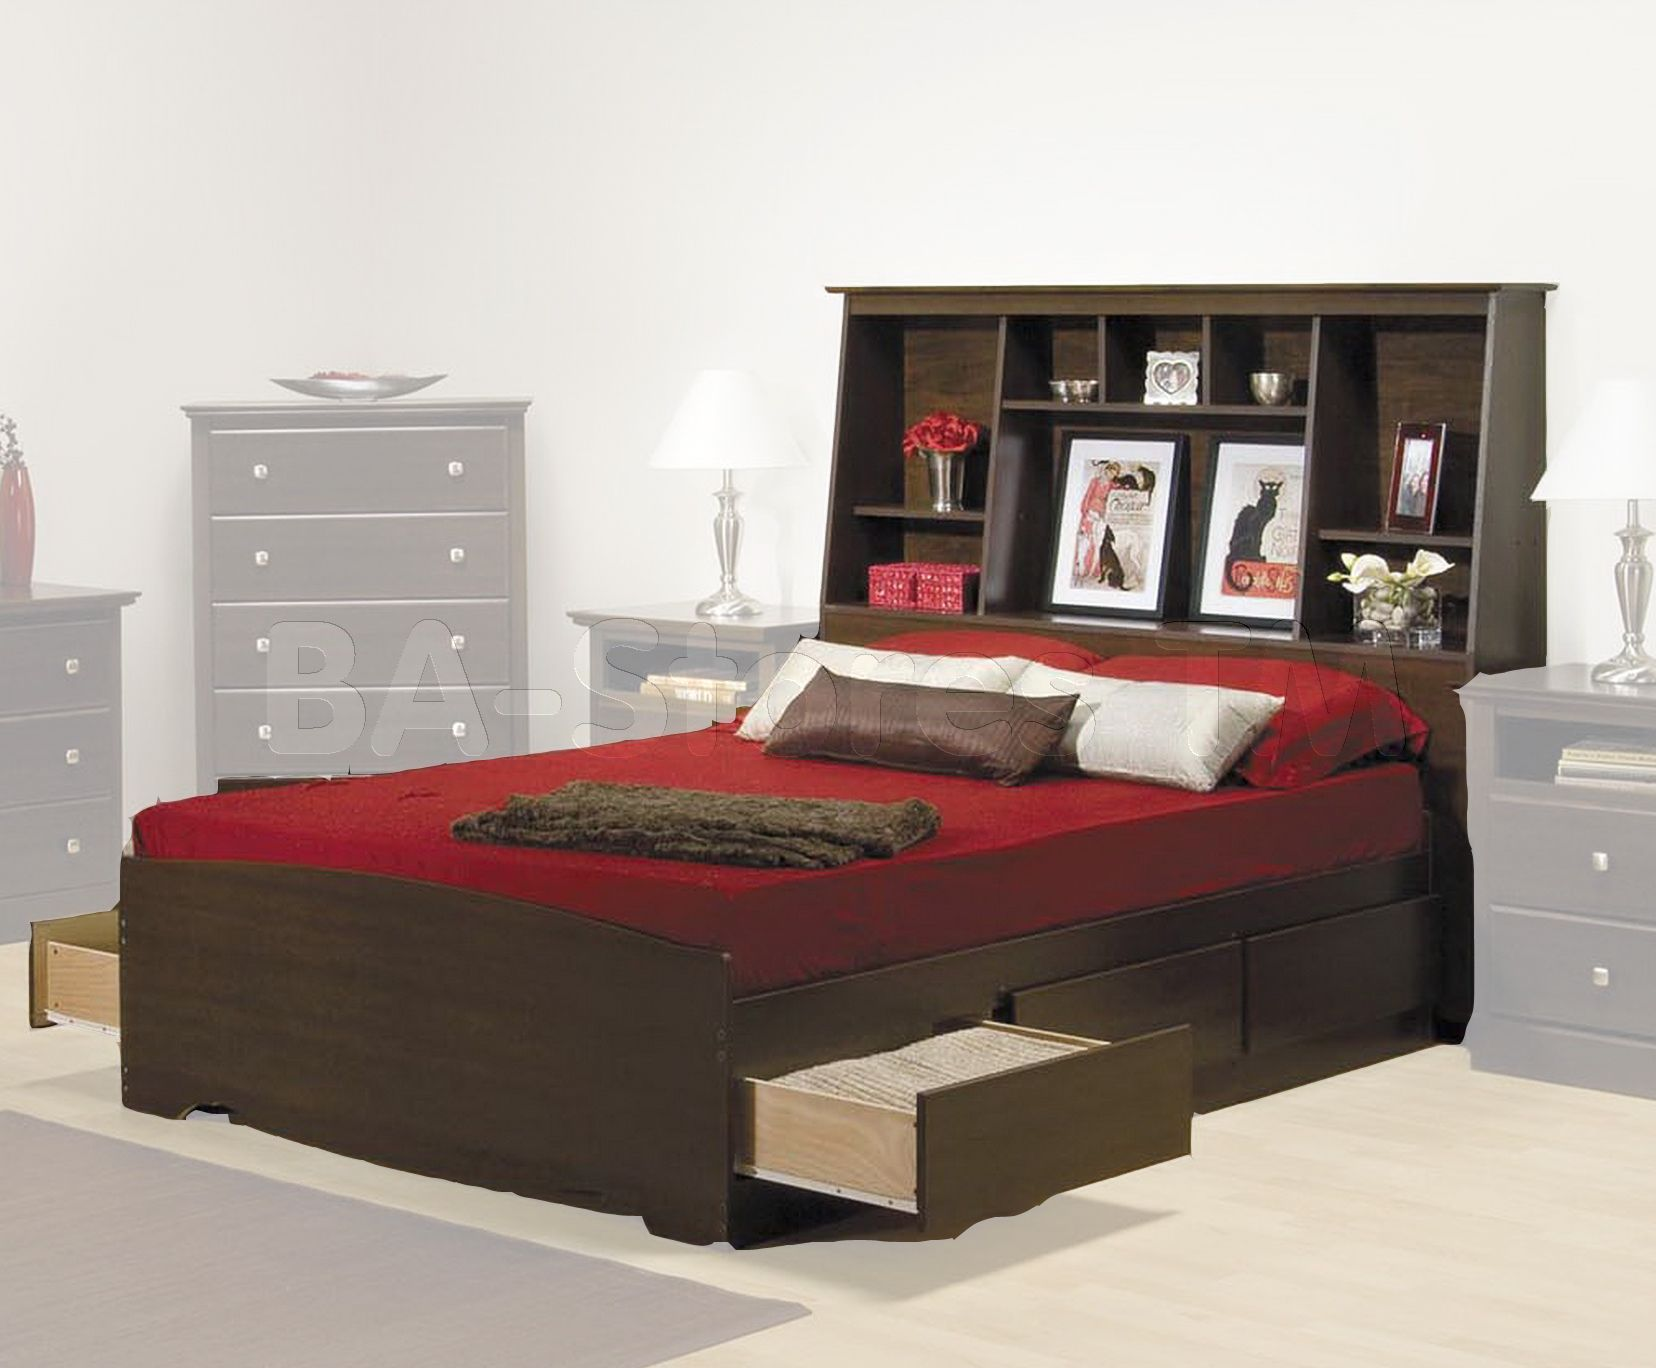 rs bookcase bed queen furniture bookshelf fb creek beds products br item wayside intercon hb number wk wolf